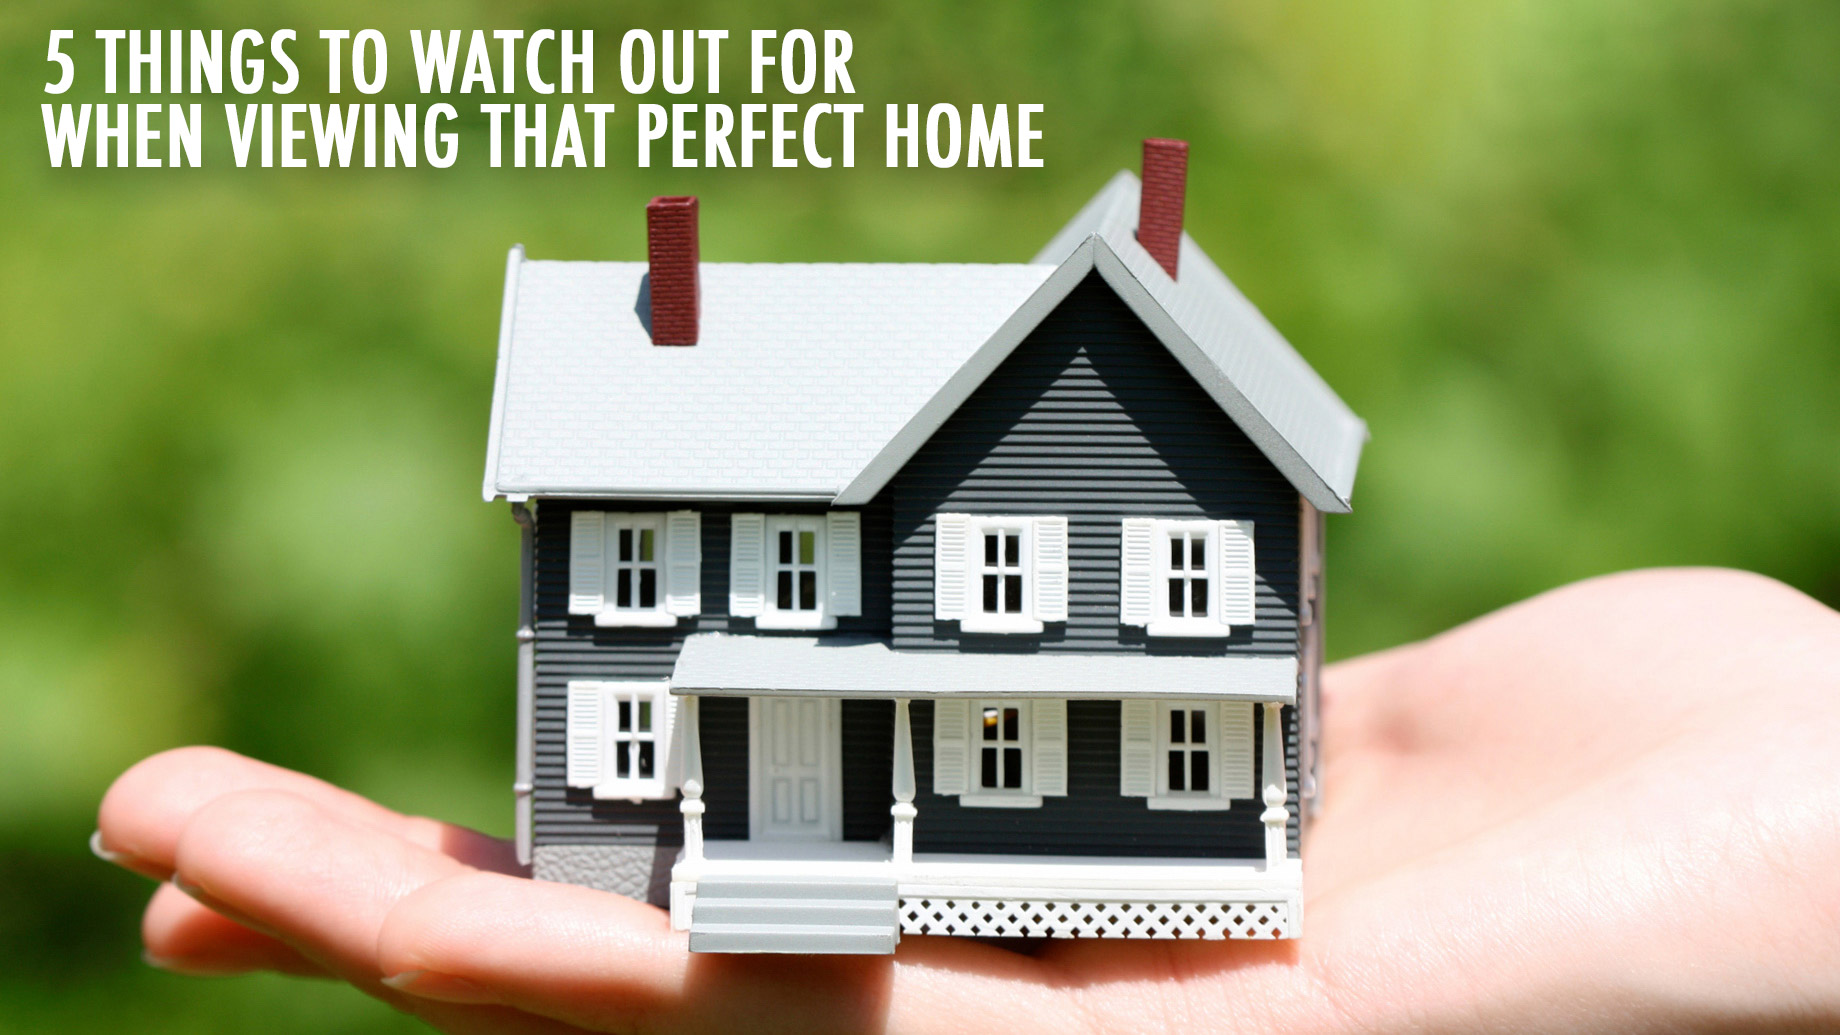 Real Estate Tips - 5 Things to Watch Out for When Viewing that Perfect Home